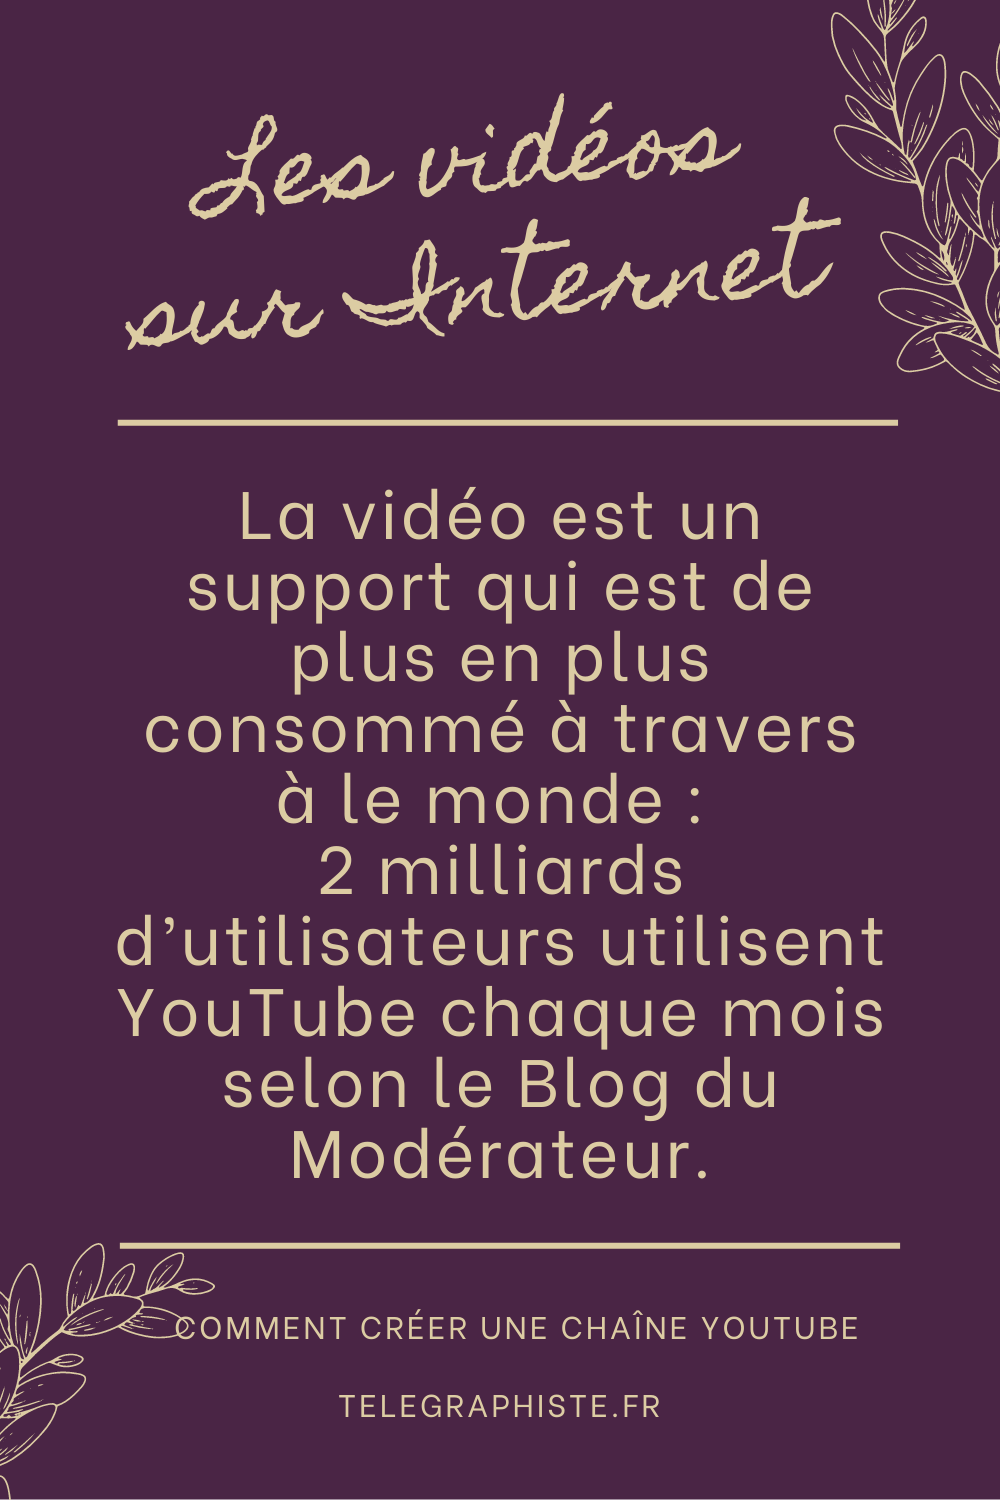 Créer une chaine Youtube 3